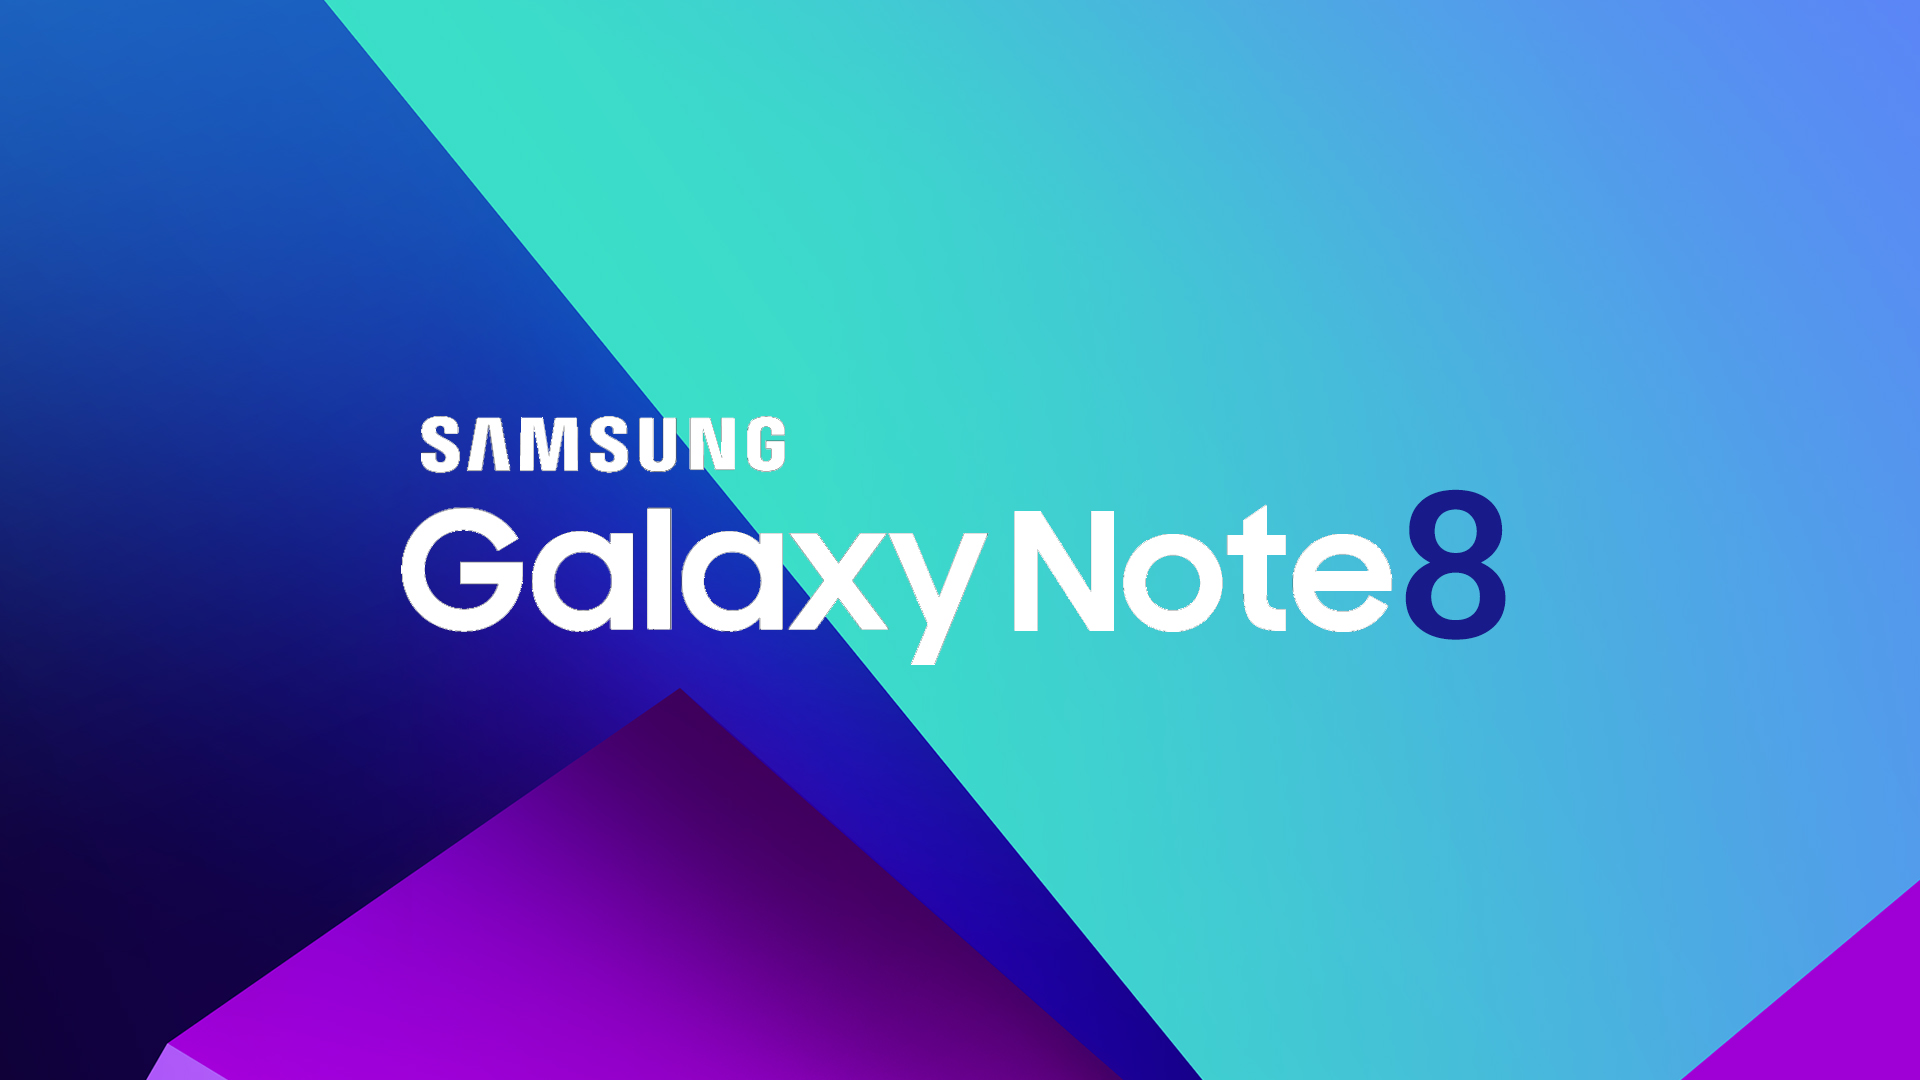 Samsung Galaxy Note 8 Set To Launch In Late August Goandroid